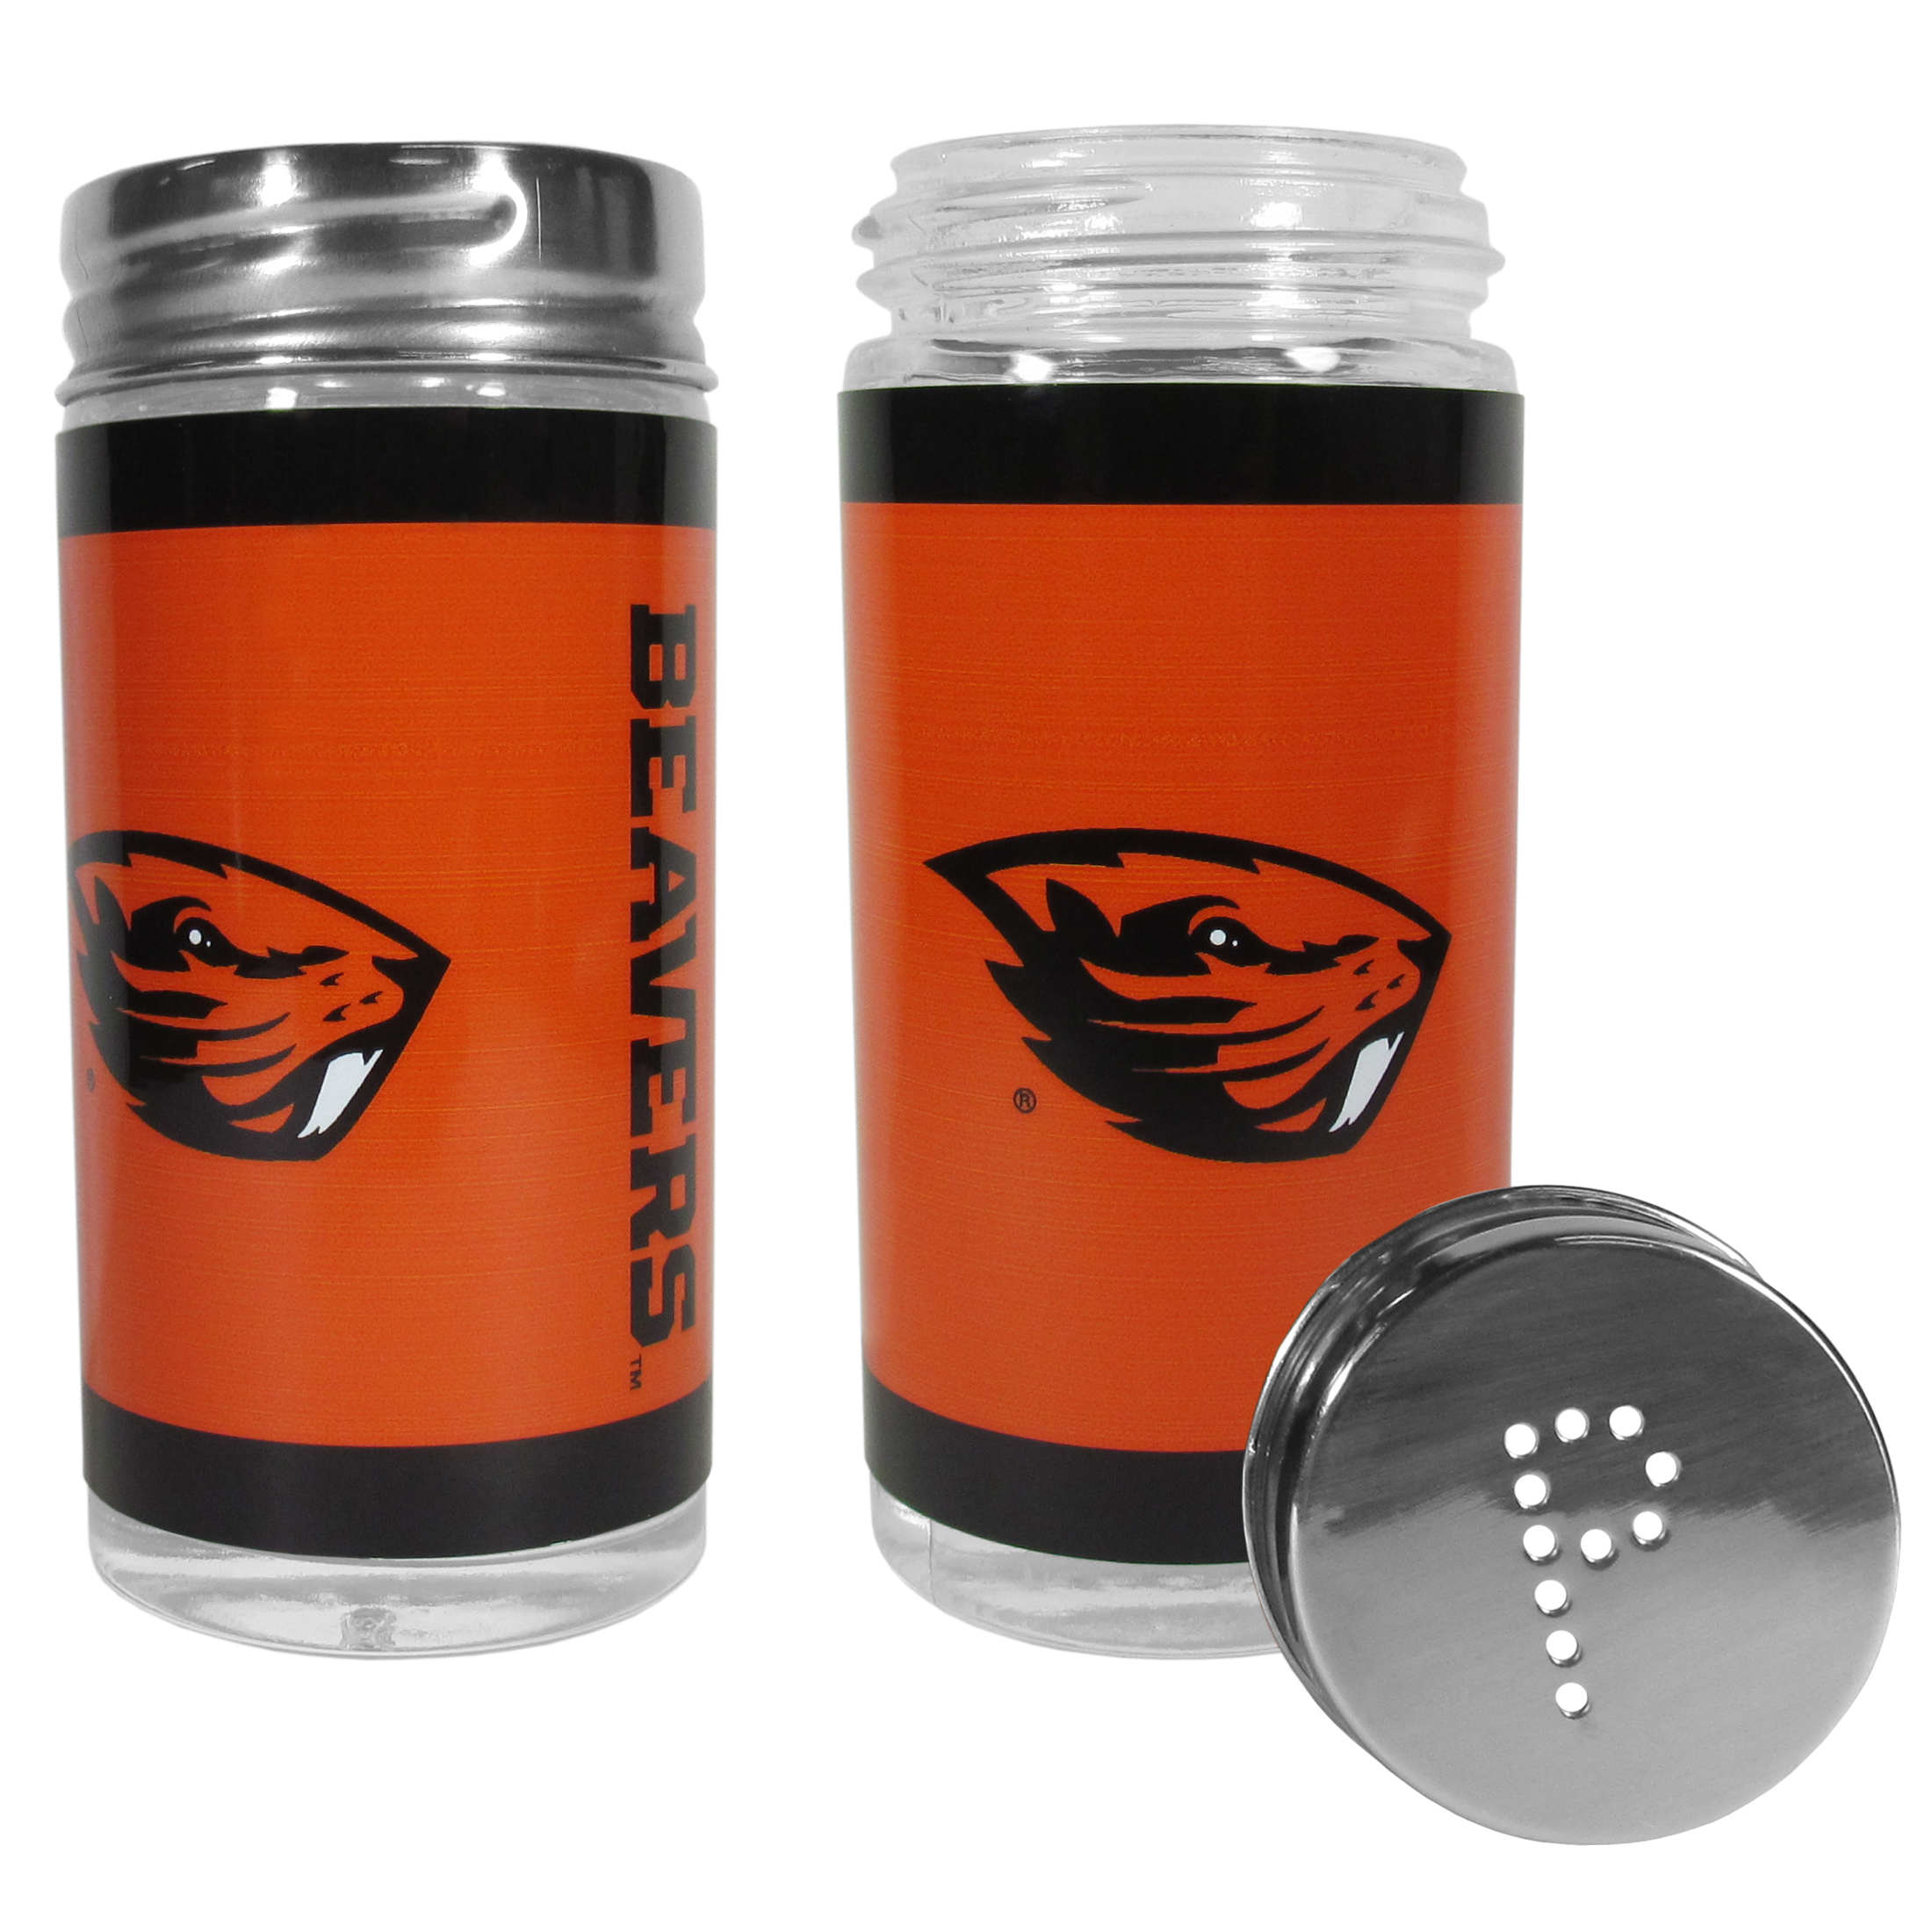 Oregon St. Beavers Tailgater Salt & Pepper Shakers - No tailgate party is complete without your Oregon St. Beavers salt & pepper shakers featuring bright team graphics. The glass shakers are 3.75 inches tall and the screw top lids have holes that spell out P and S. These team shakers are a great grill accessory whether you are barbecuing on the patio, picnicing or having a game day party.